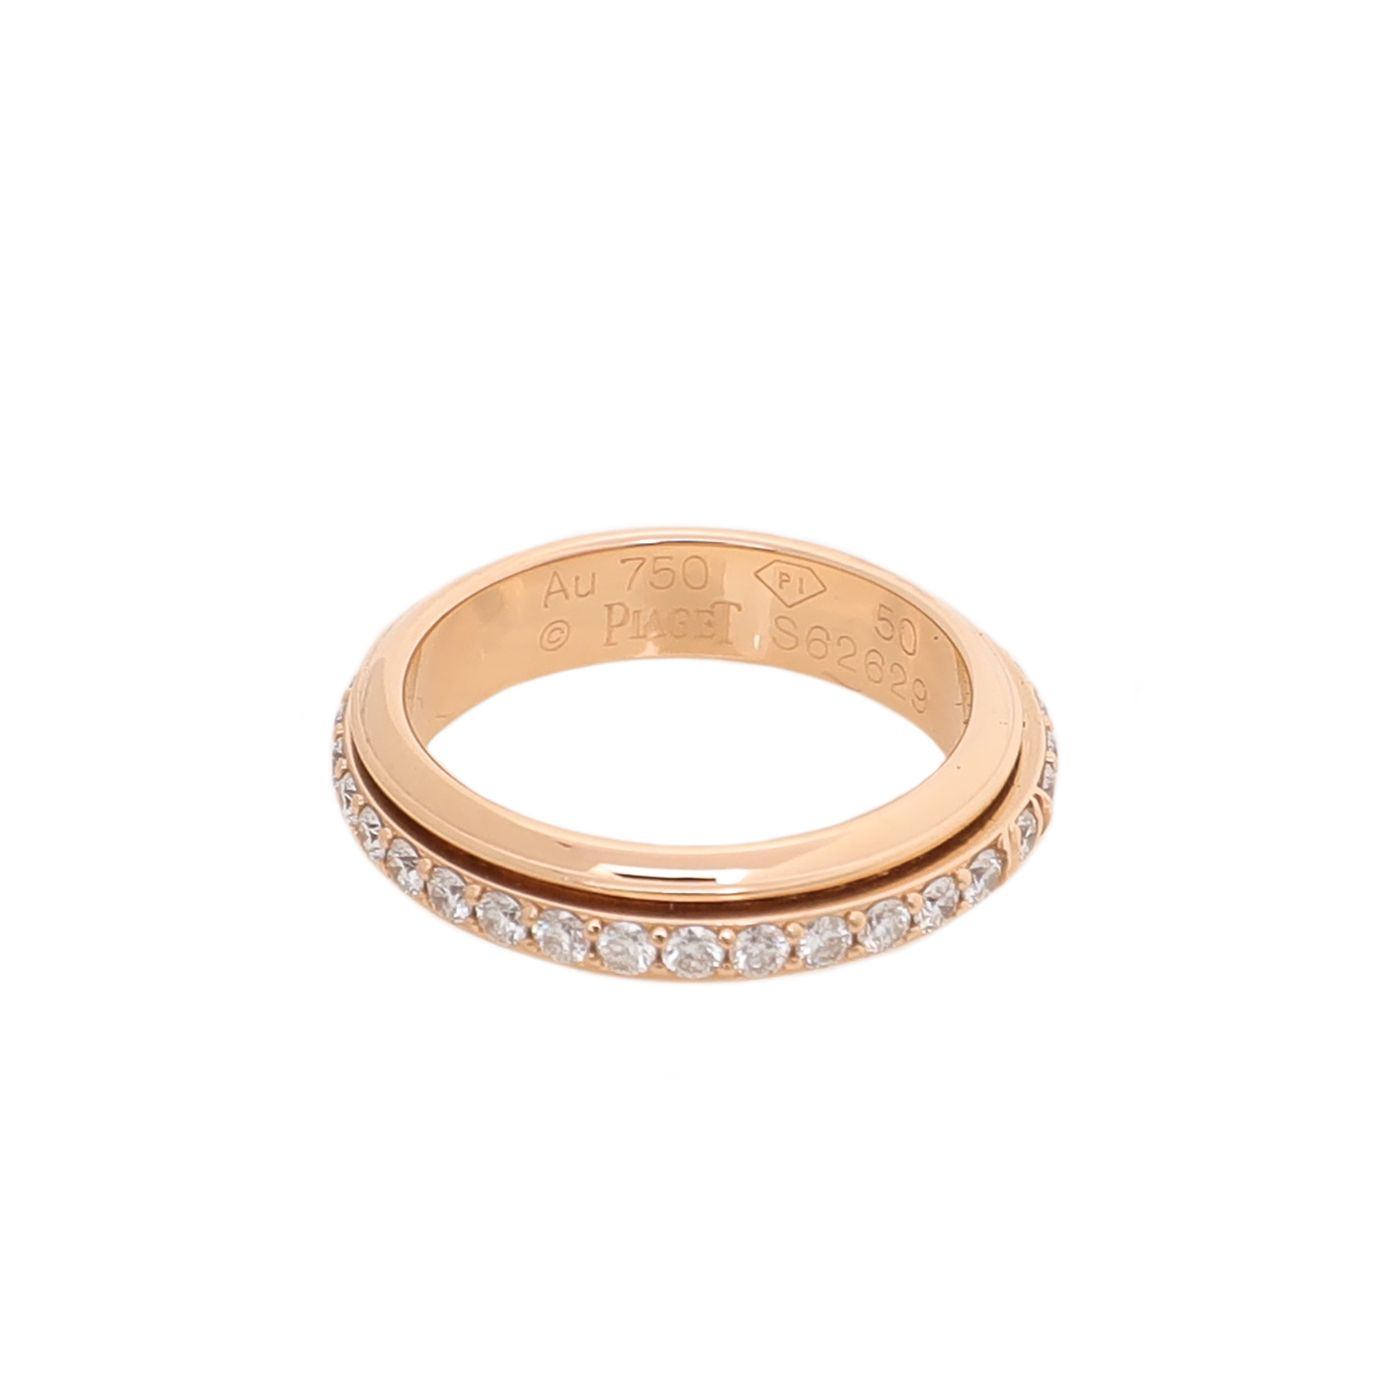 Piaget 18K Rose Gold Diamonds Possession Wedding Ring 50